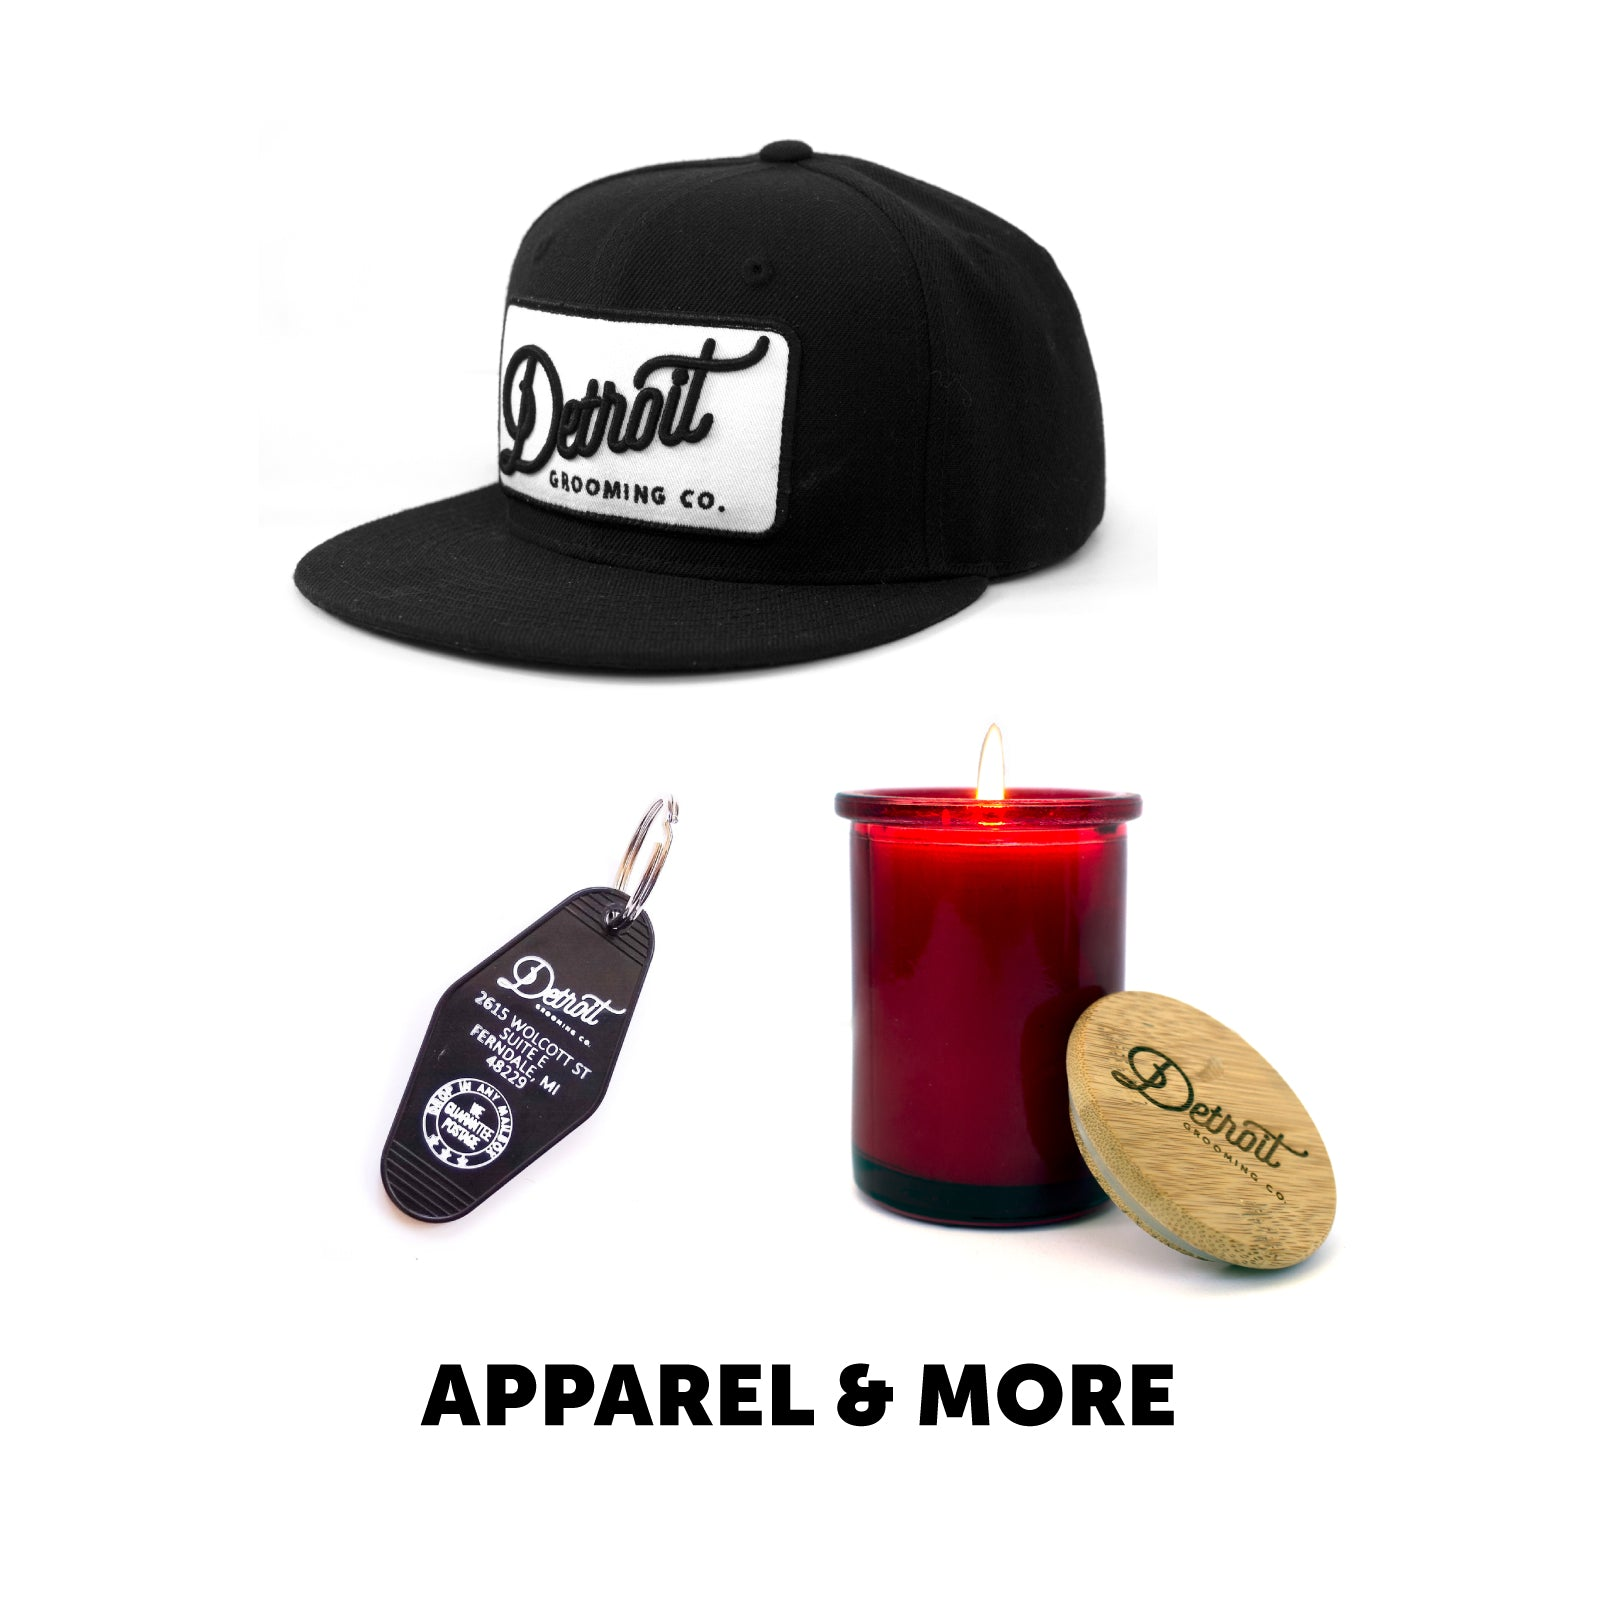 Men's Clothing, Apparel, and Accessories from Detroit Grooming Co.